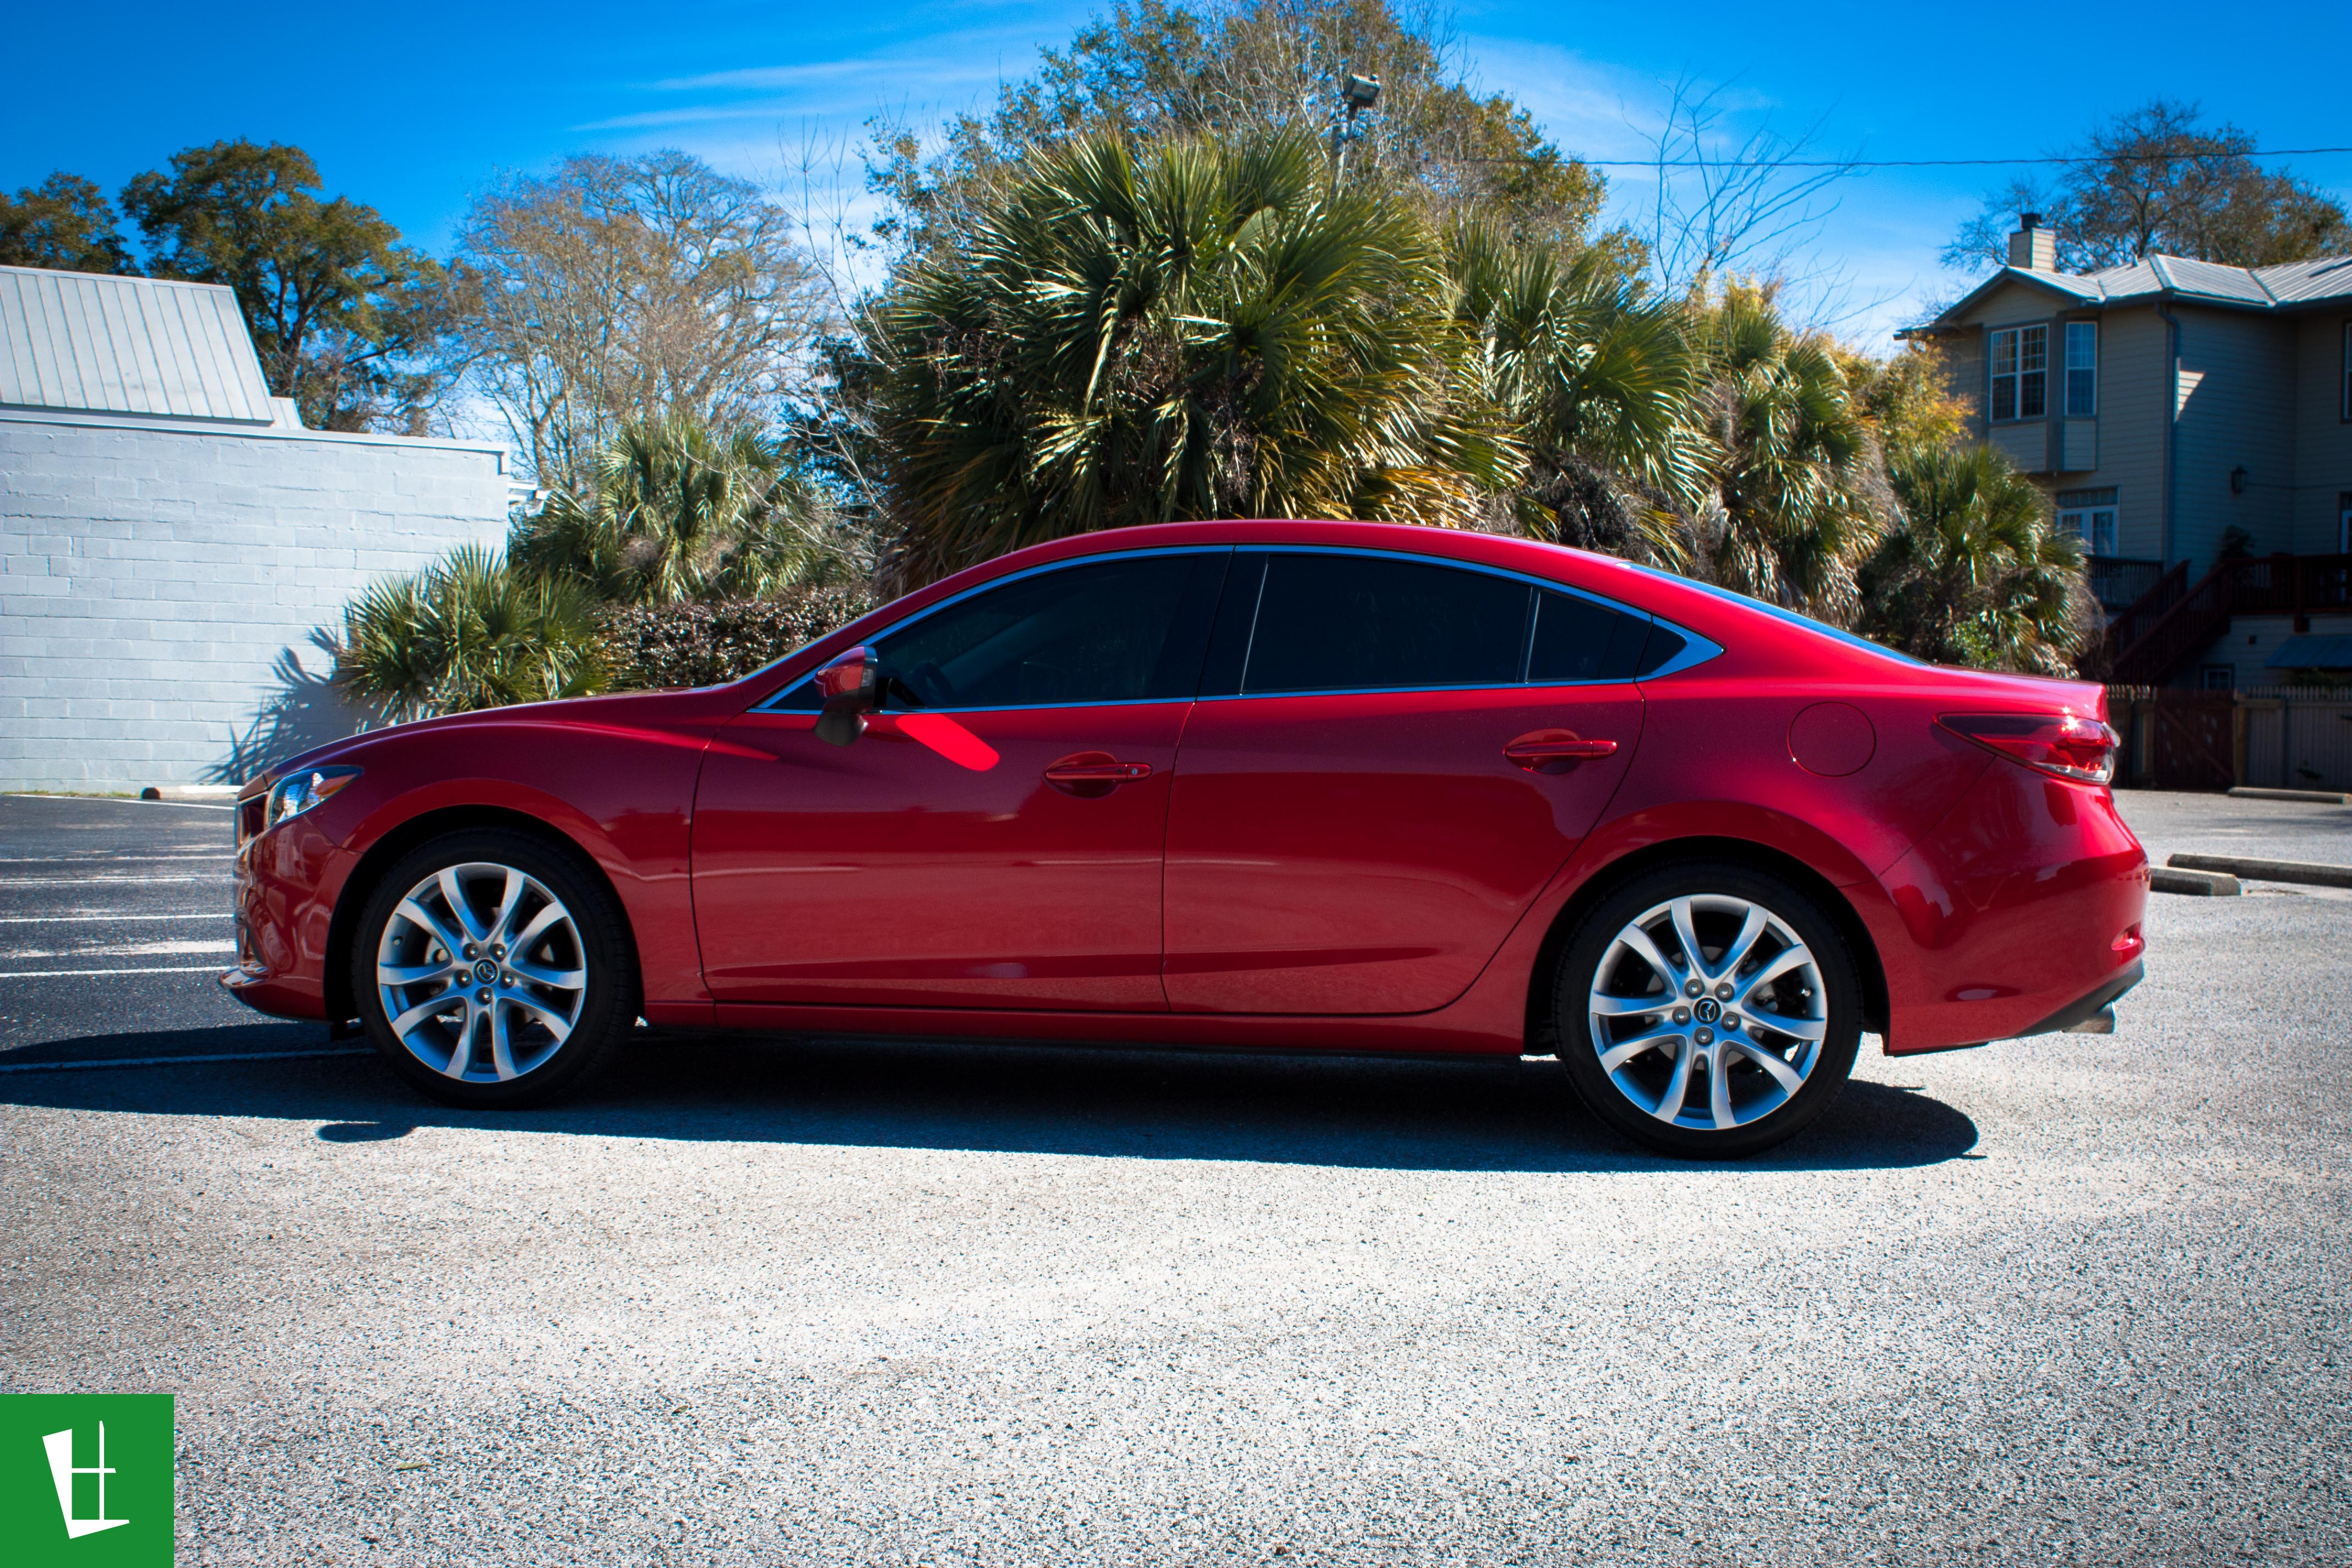 http://www.glasswrap.com/wp-content/uploads/2015/02/2015-Mazda-6-Sedan-Window-Tinting.jpg